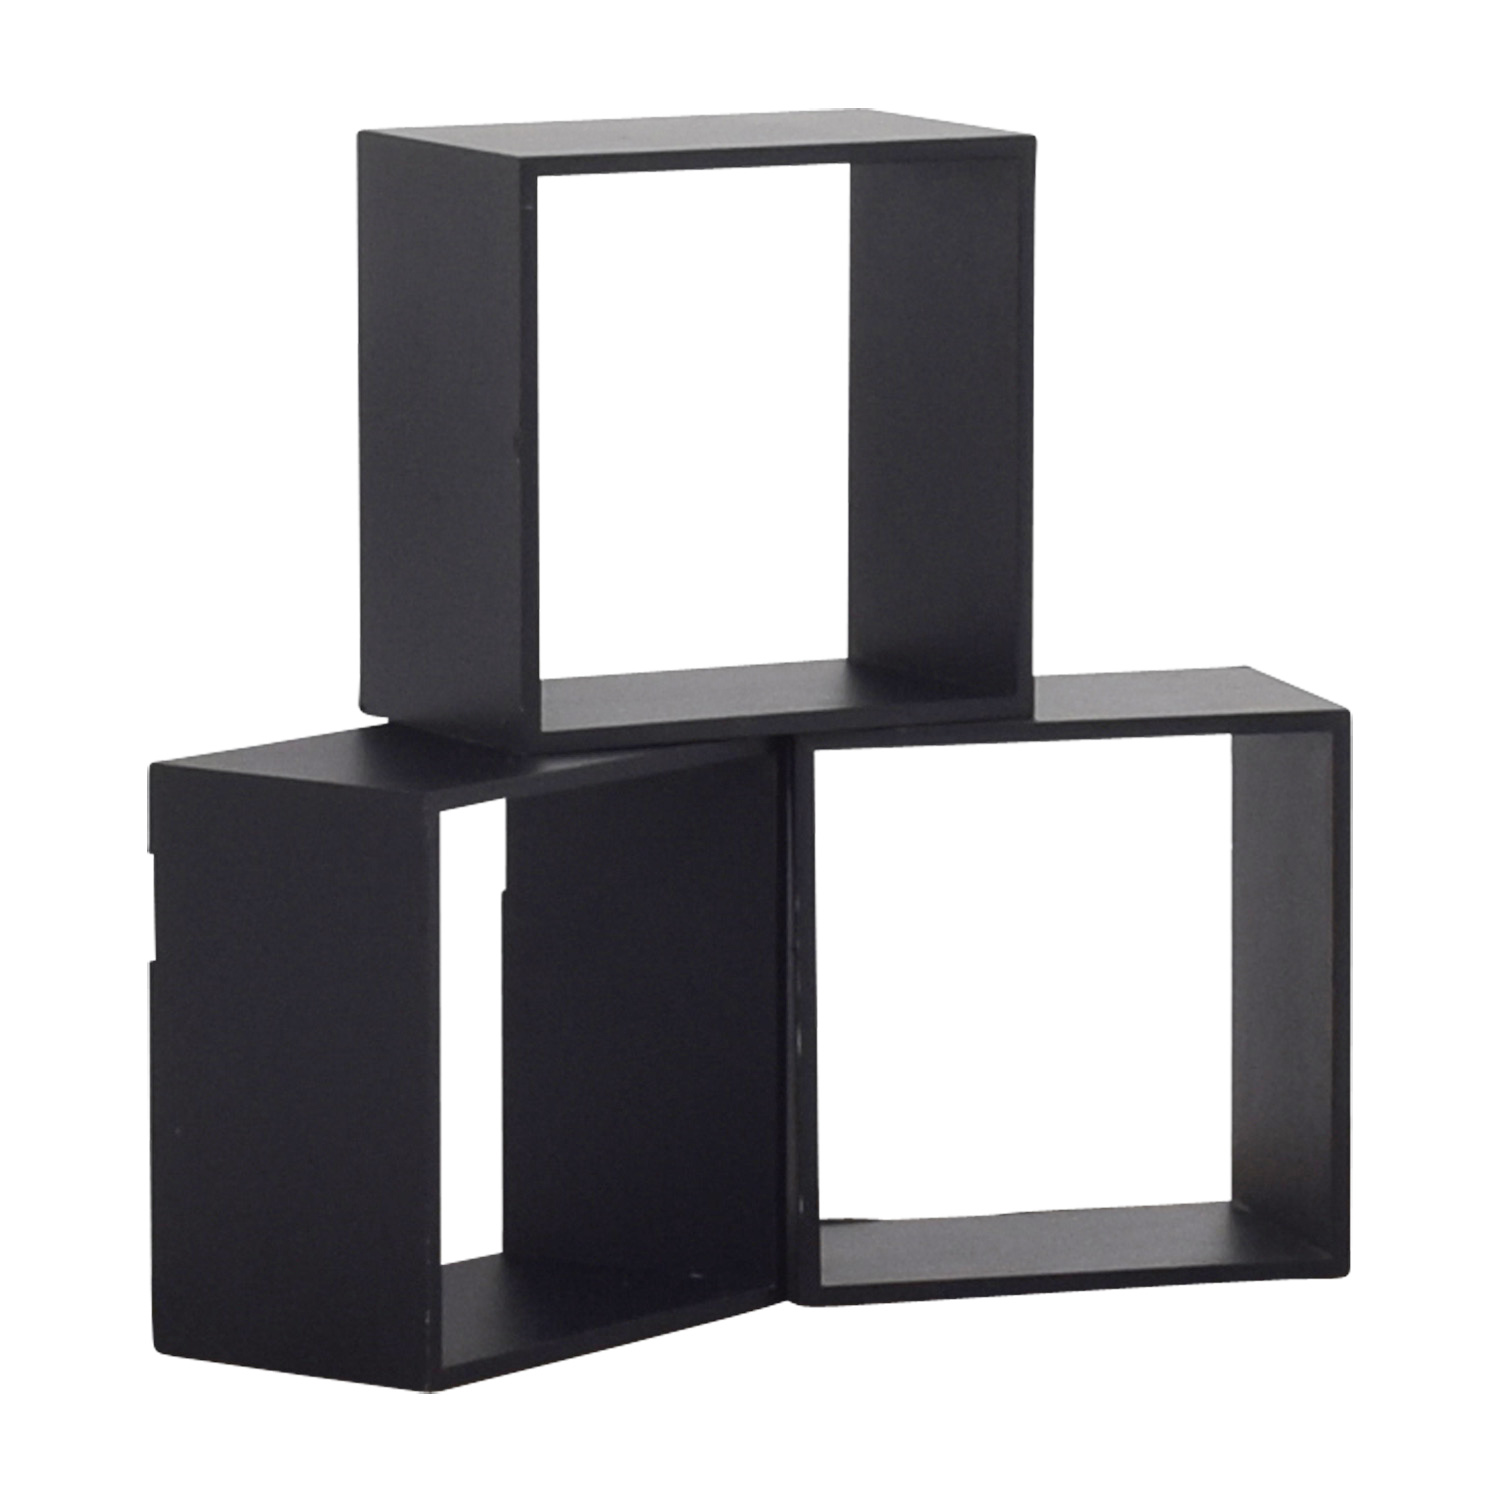 Black Decorative Wall Box Shelves BLACK